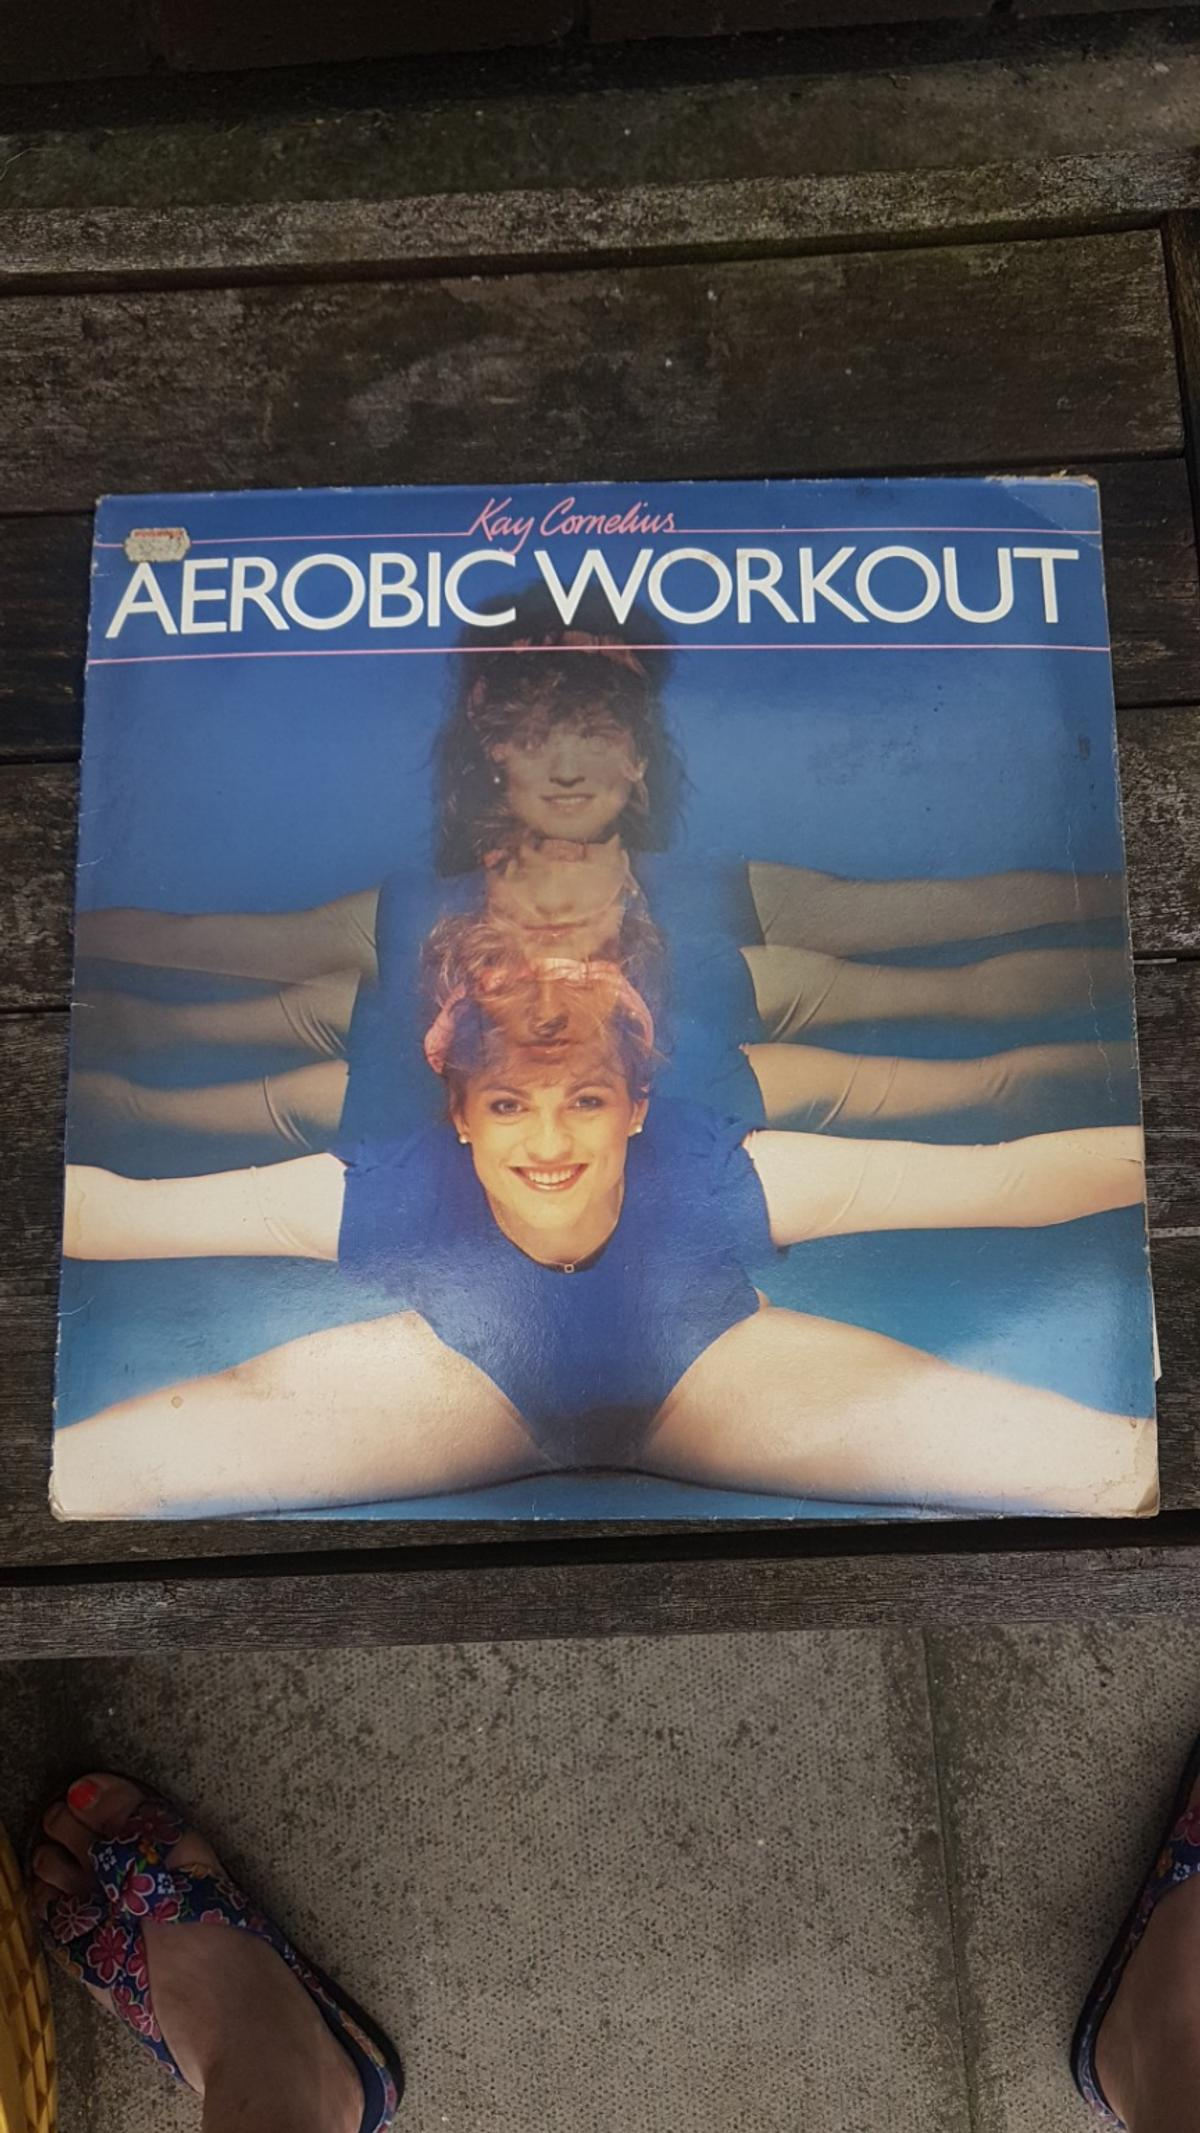 includes pull out exercise guide